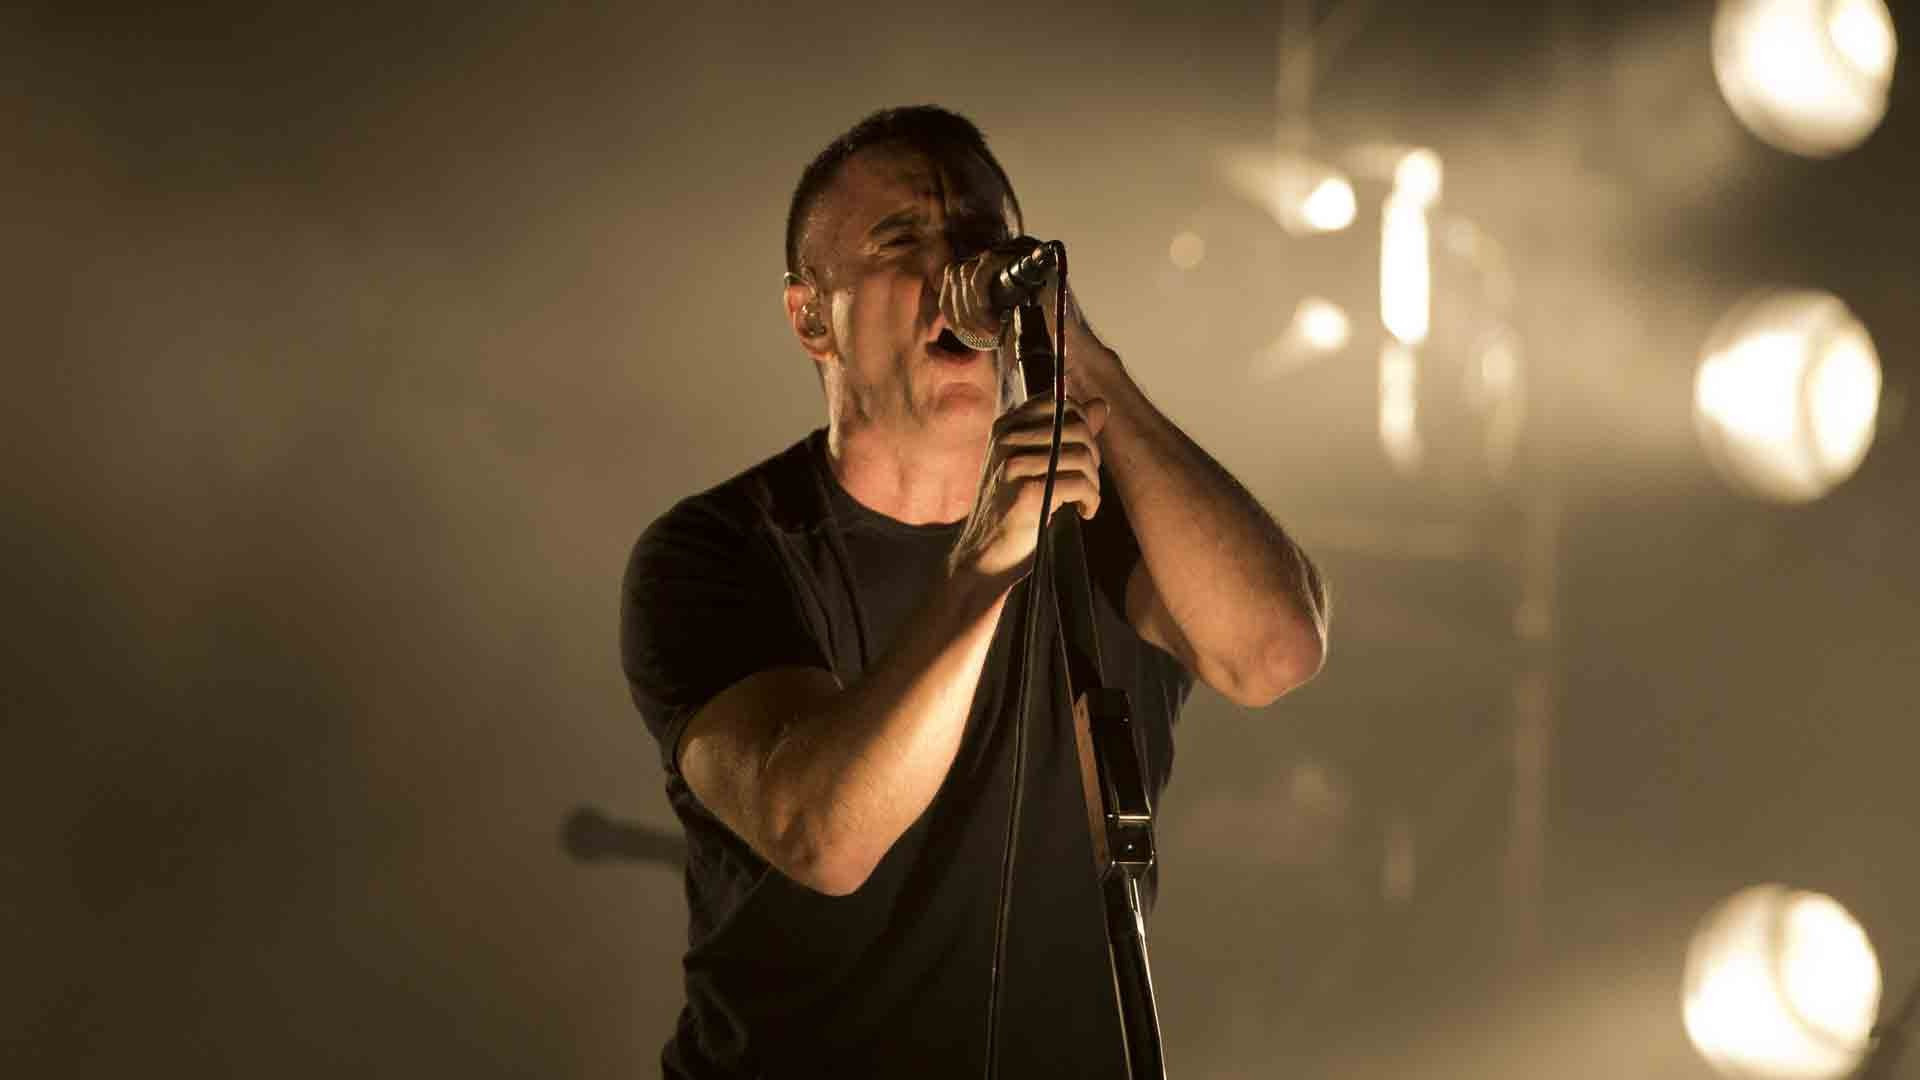 Trent Reznor working with Apple on secret music project